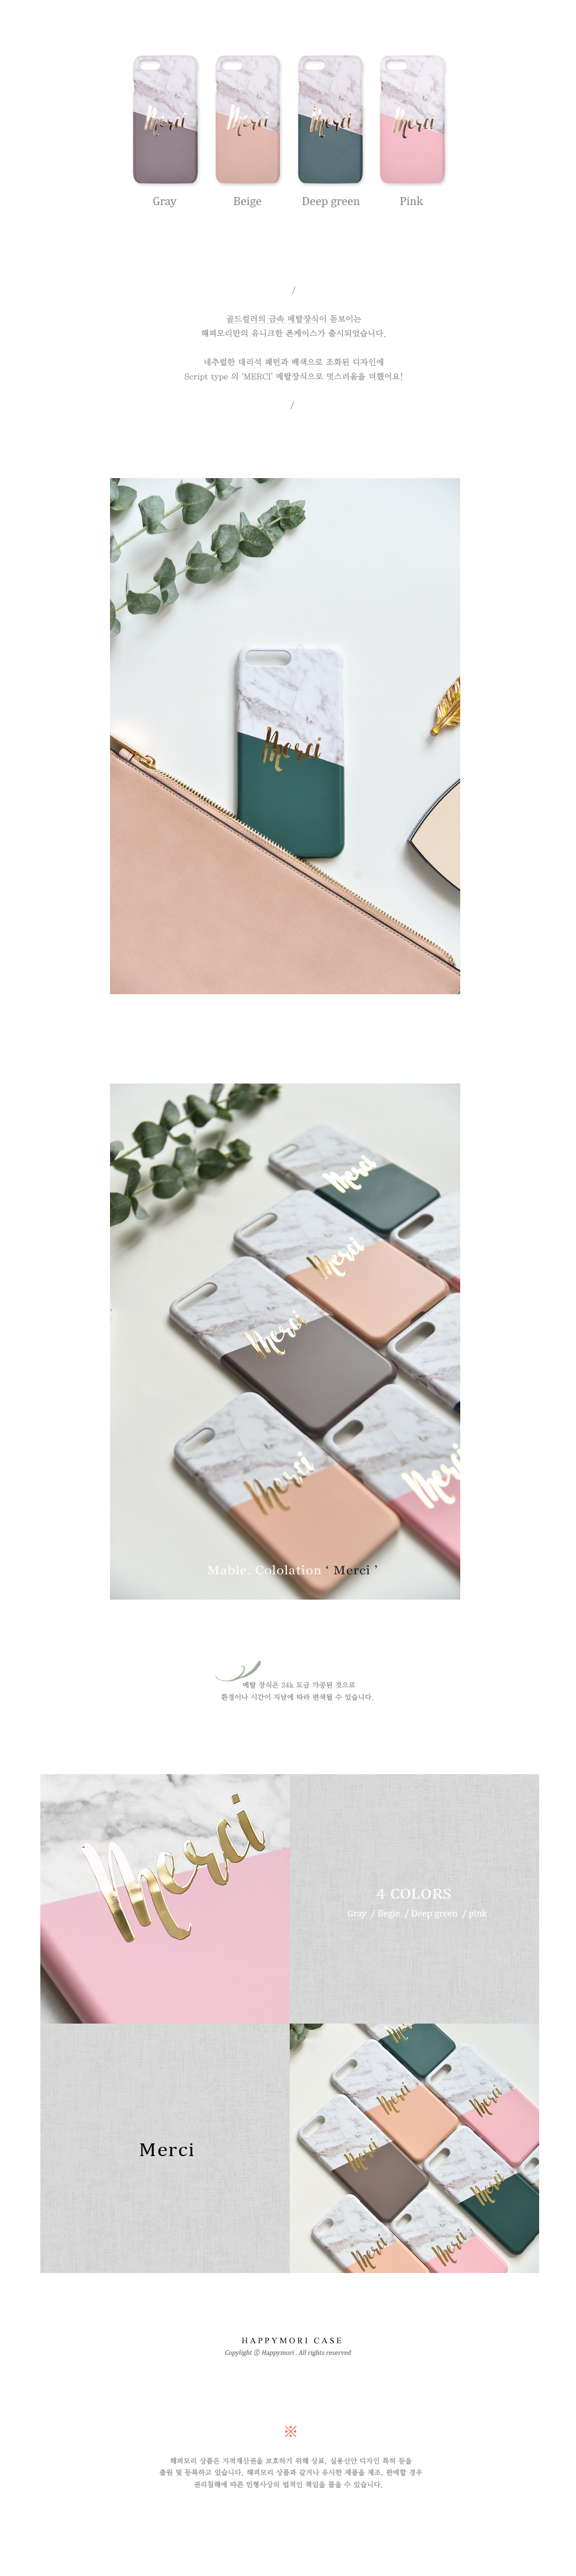 [Happymori] Marble coloration Cell Phone Case (Merci)